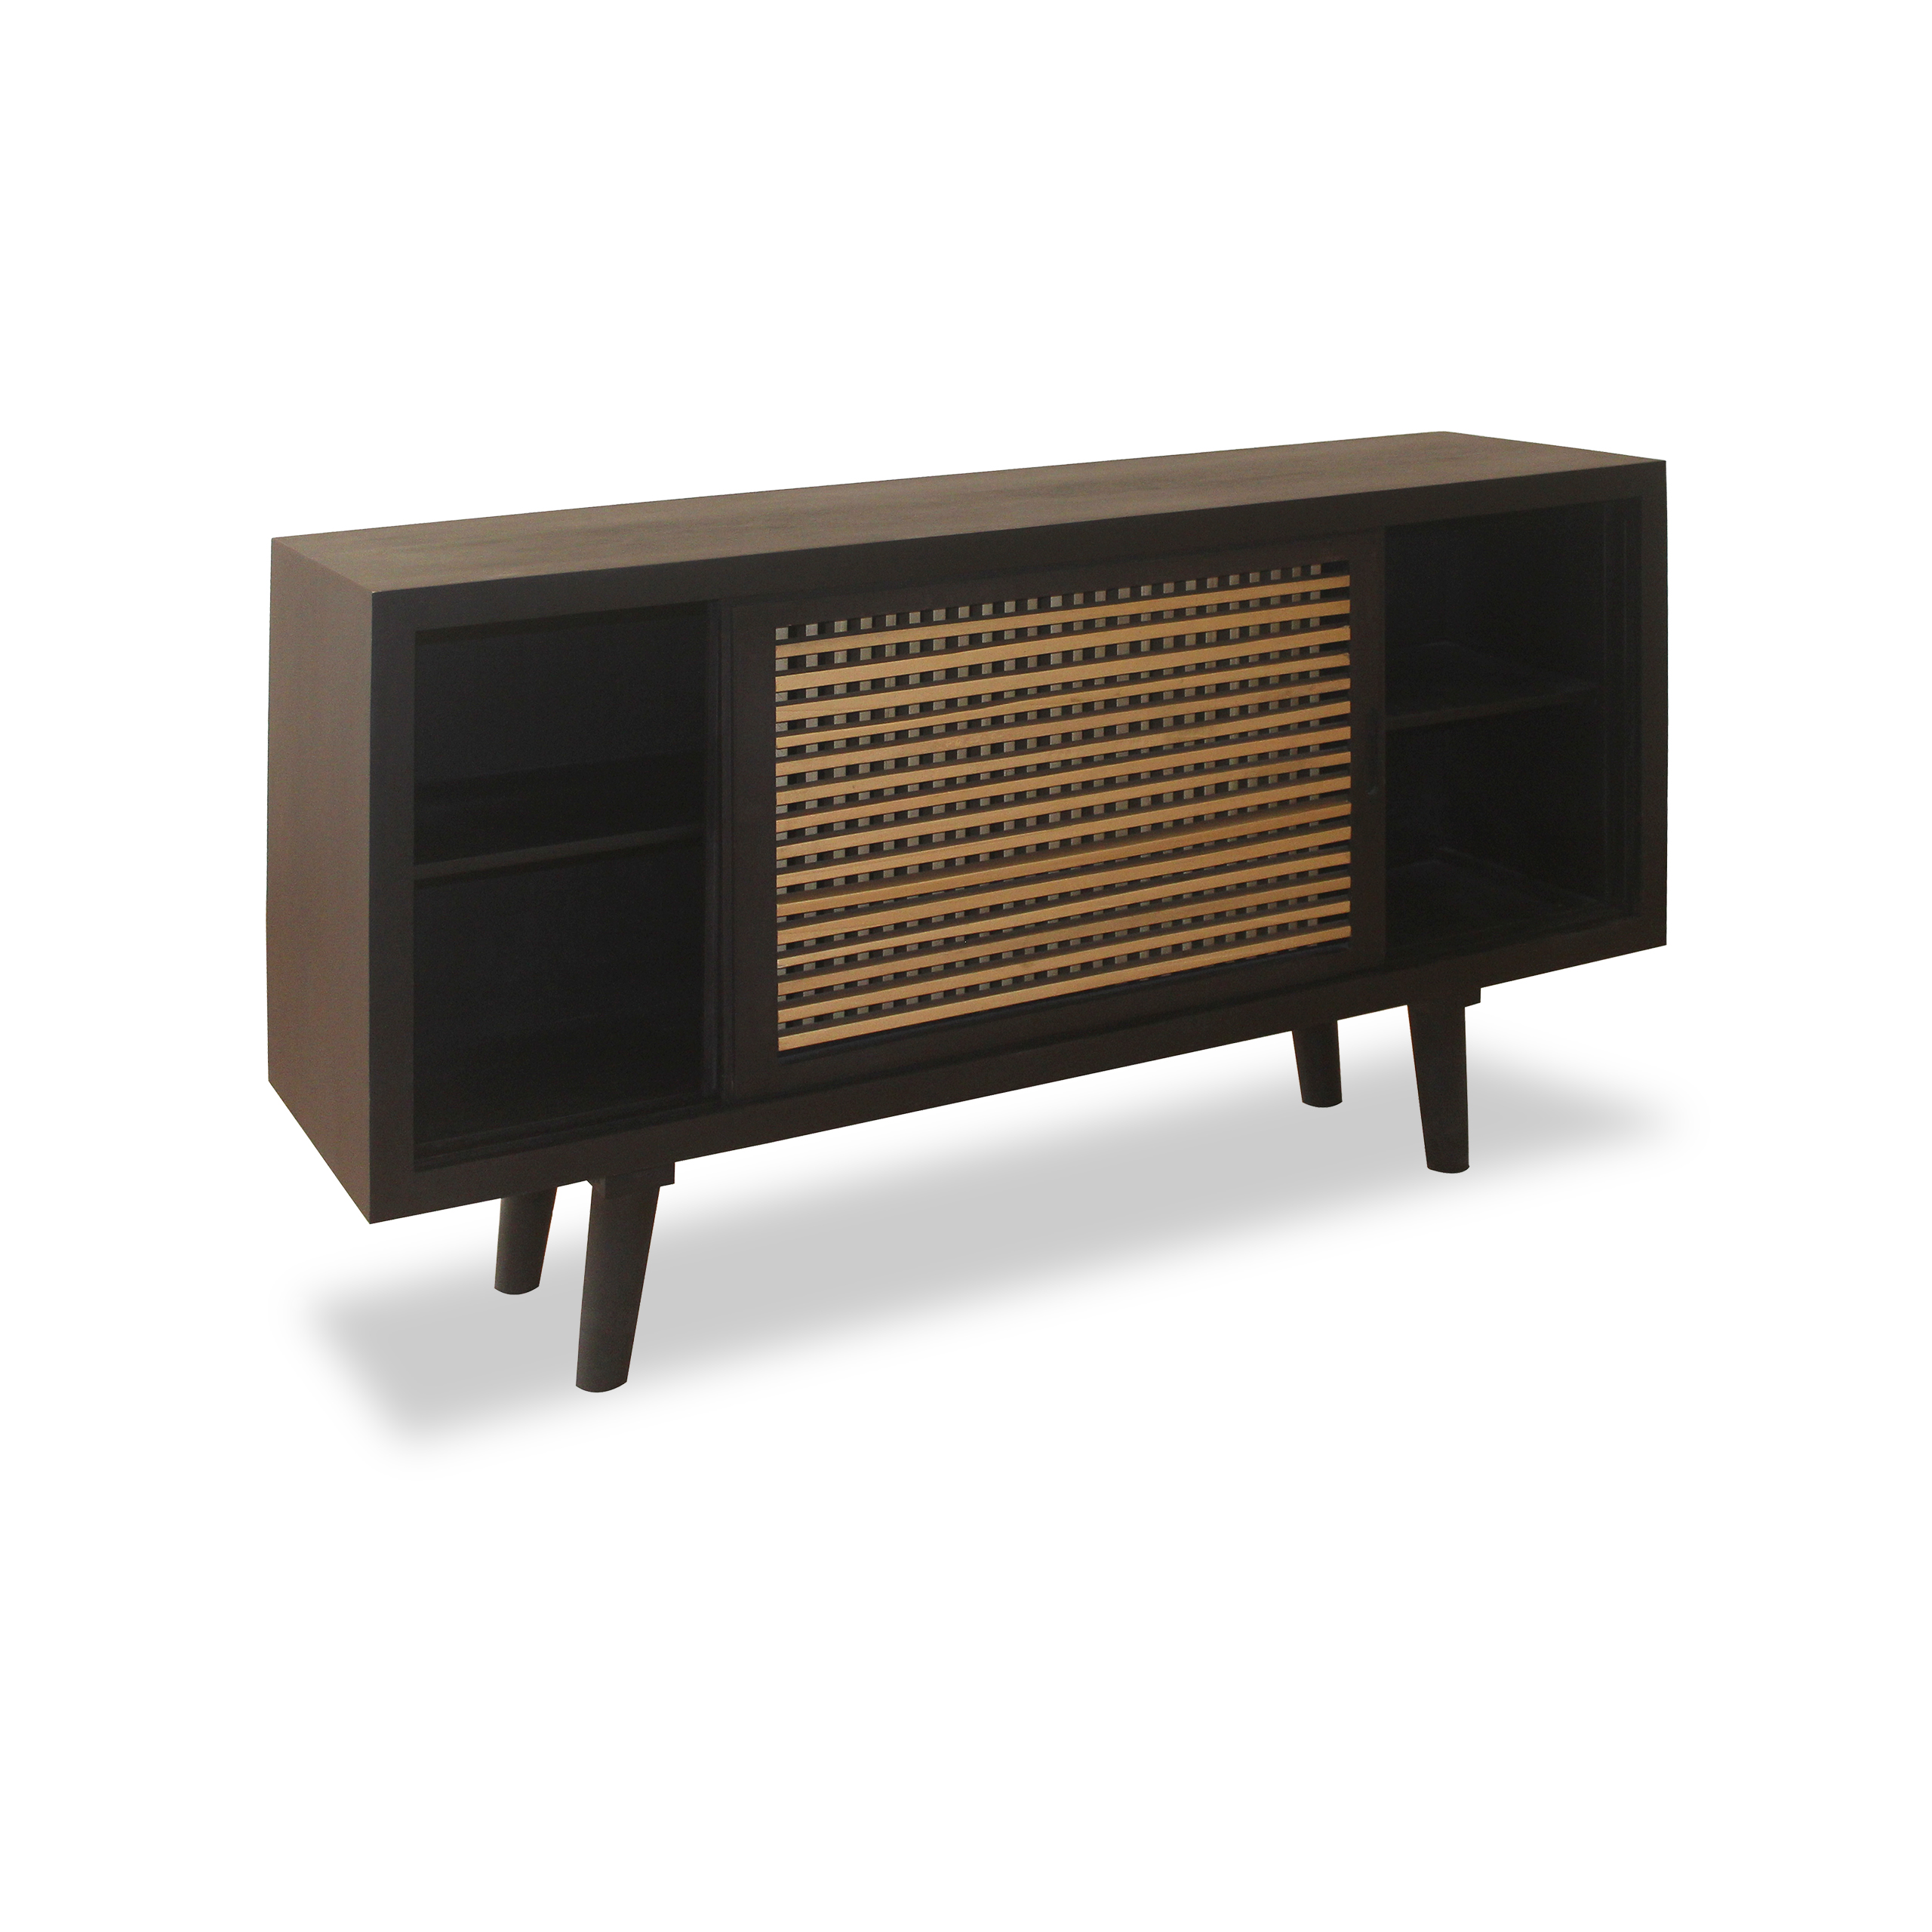 sideboard holz anrichte k che wohnzimmerschrank modern kommode braun 160 cm ebay. Black Bedroom Furniture Sets. Home Design Ideas